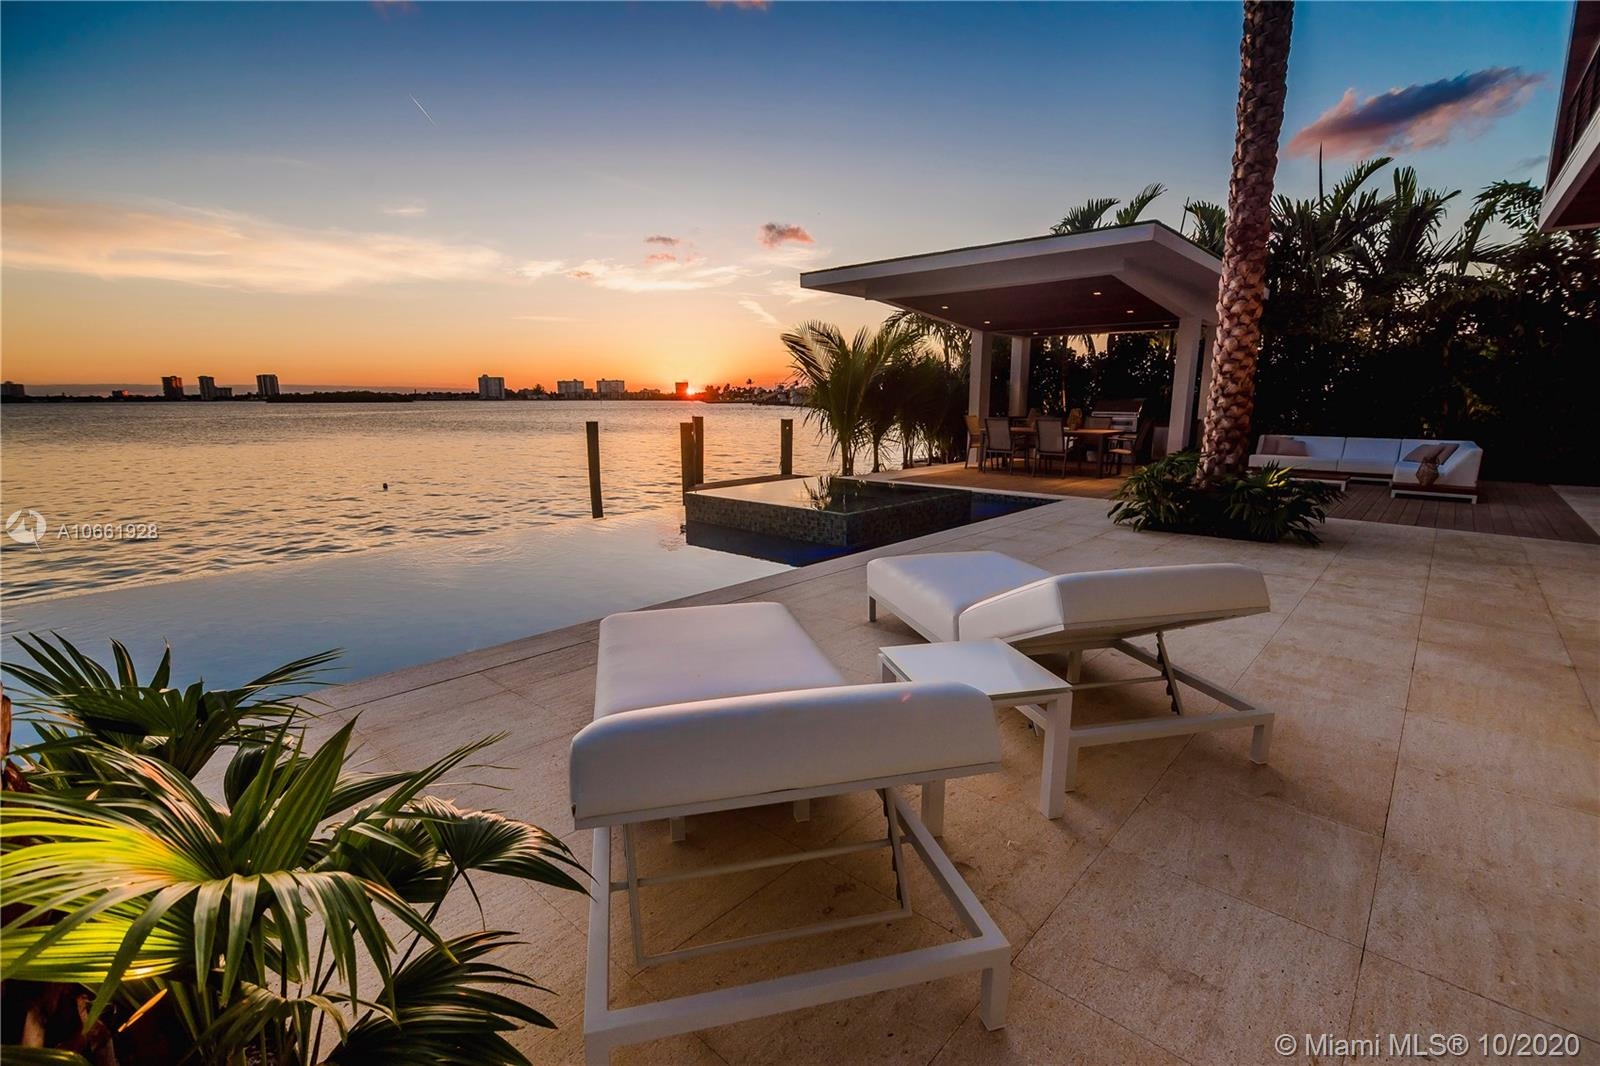 image #1 of property, Bay Harbor Islands